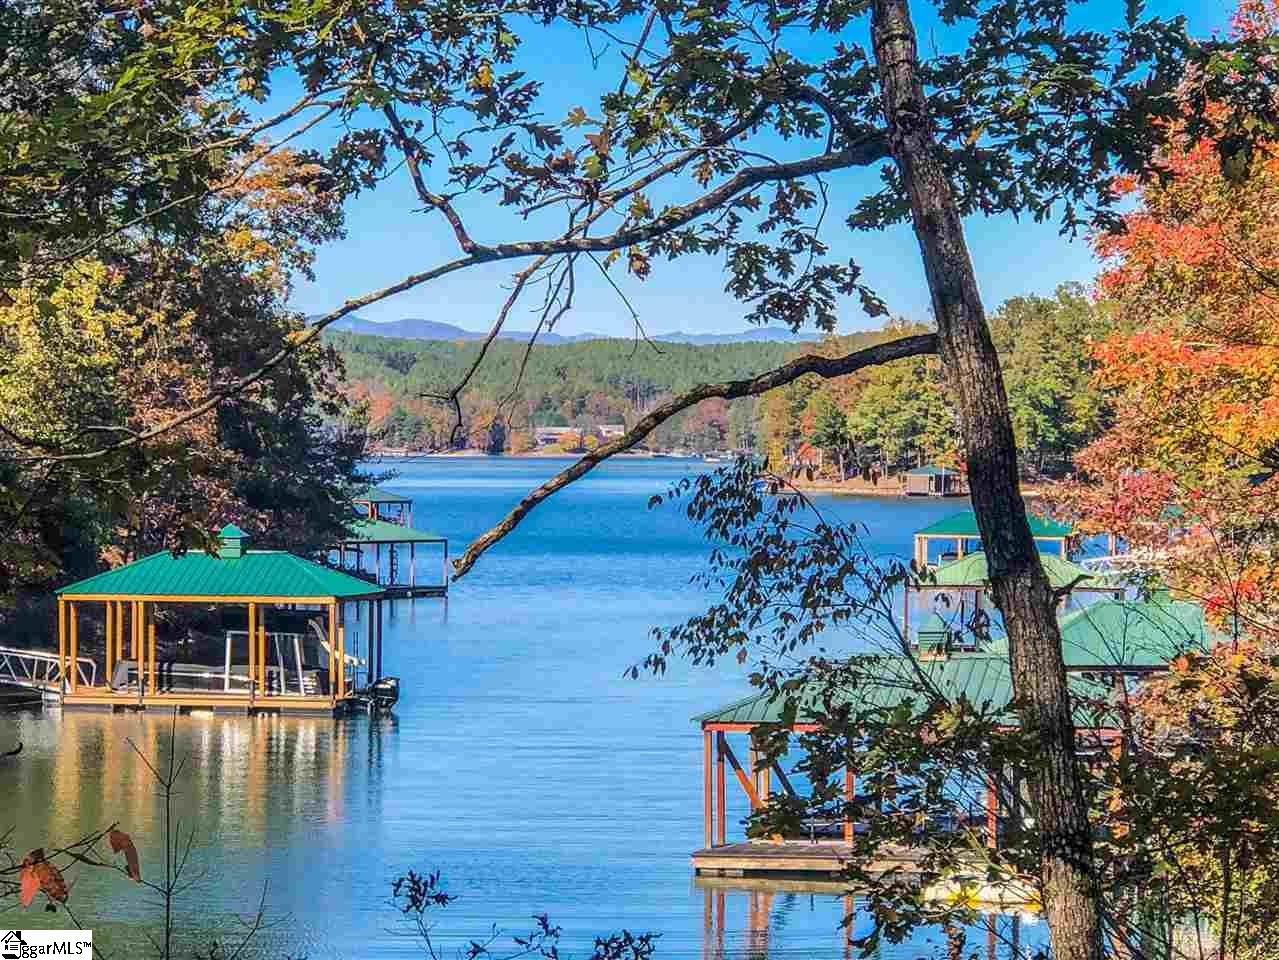 Unique opportunity! Wonderful waterfront lot with gentle slope and ideal building envelope. Larger than most lots at 2.34 acres. Long water views with over 380 ft. of waterfront and perfect for swimming access or launching a kayak. Price reflects water view/access lot. Membership is available as separate purchase with multiple levels to choose from. Community amenities include Fazio golf course, Bistro restaurant, Beach Club with pool, Wellness facility, lots of walking trails and a club house coming soon! The Cliffs at Keowee Springs is one of three communities that surround Lake Keowee and one of seven total Cliffs Communities offering an impressive variety of amenities available upon joining the Club. Just minutes to the gatehouse for accessing area townships and everyday conveniences and shopping.  Please note, this lot is non-dockable.